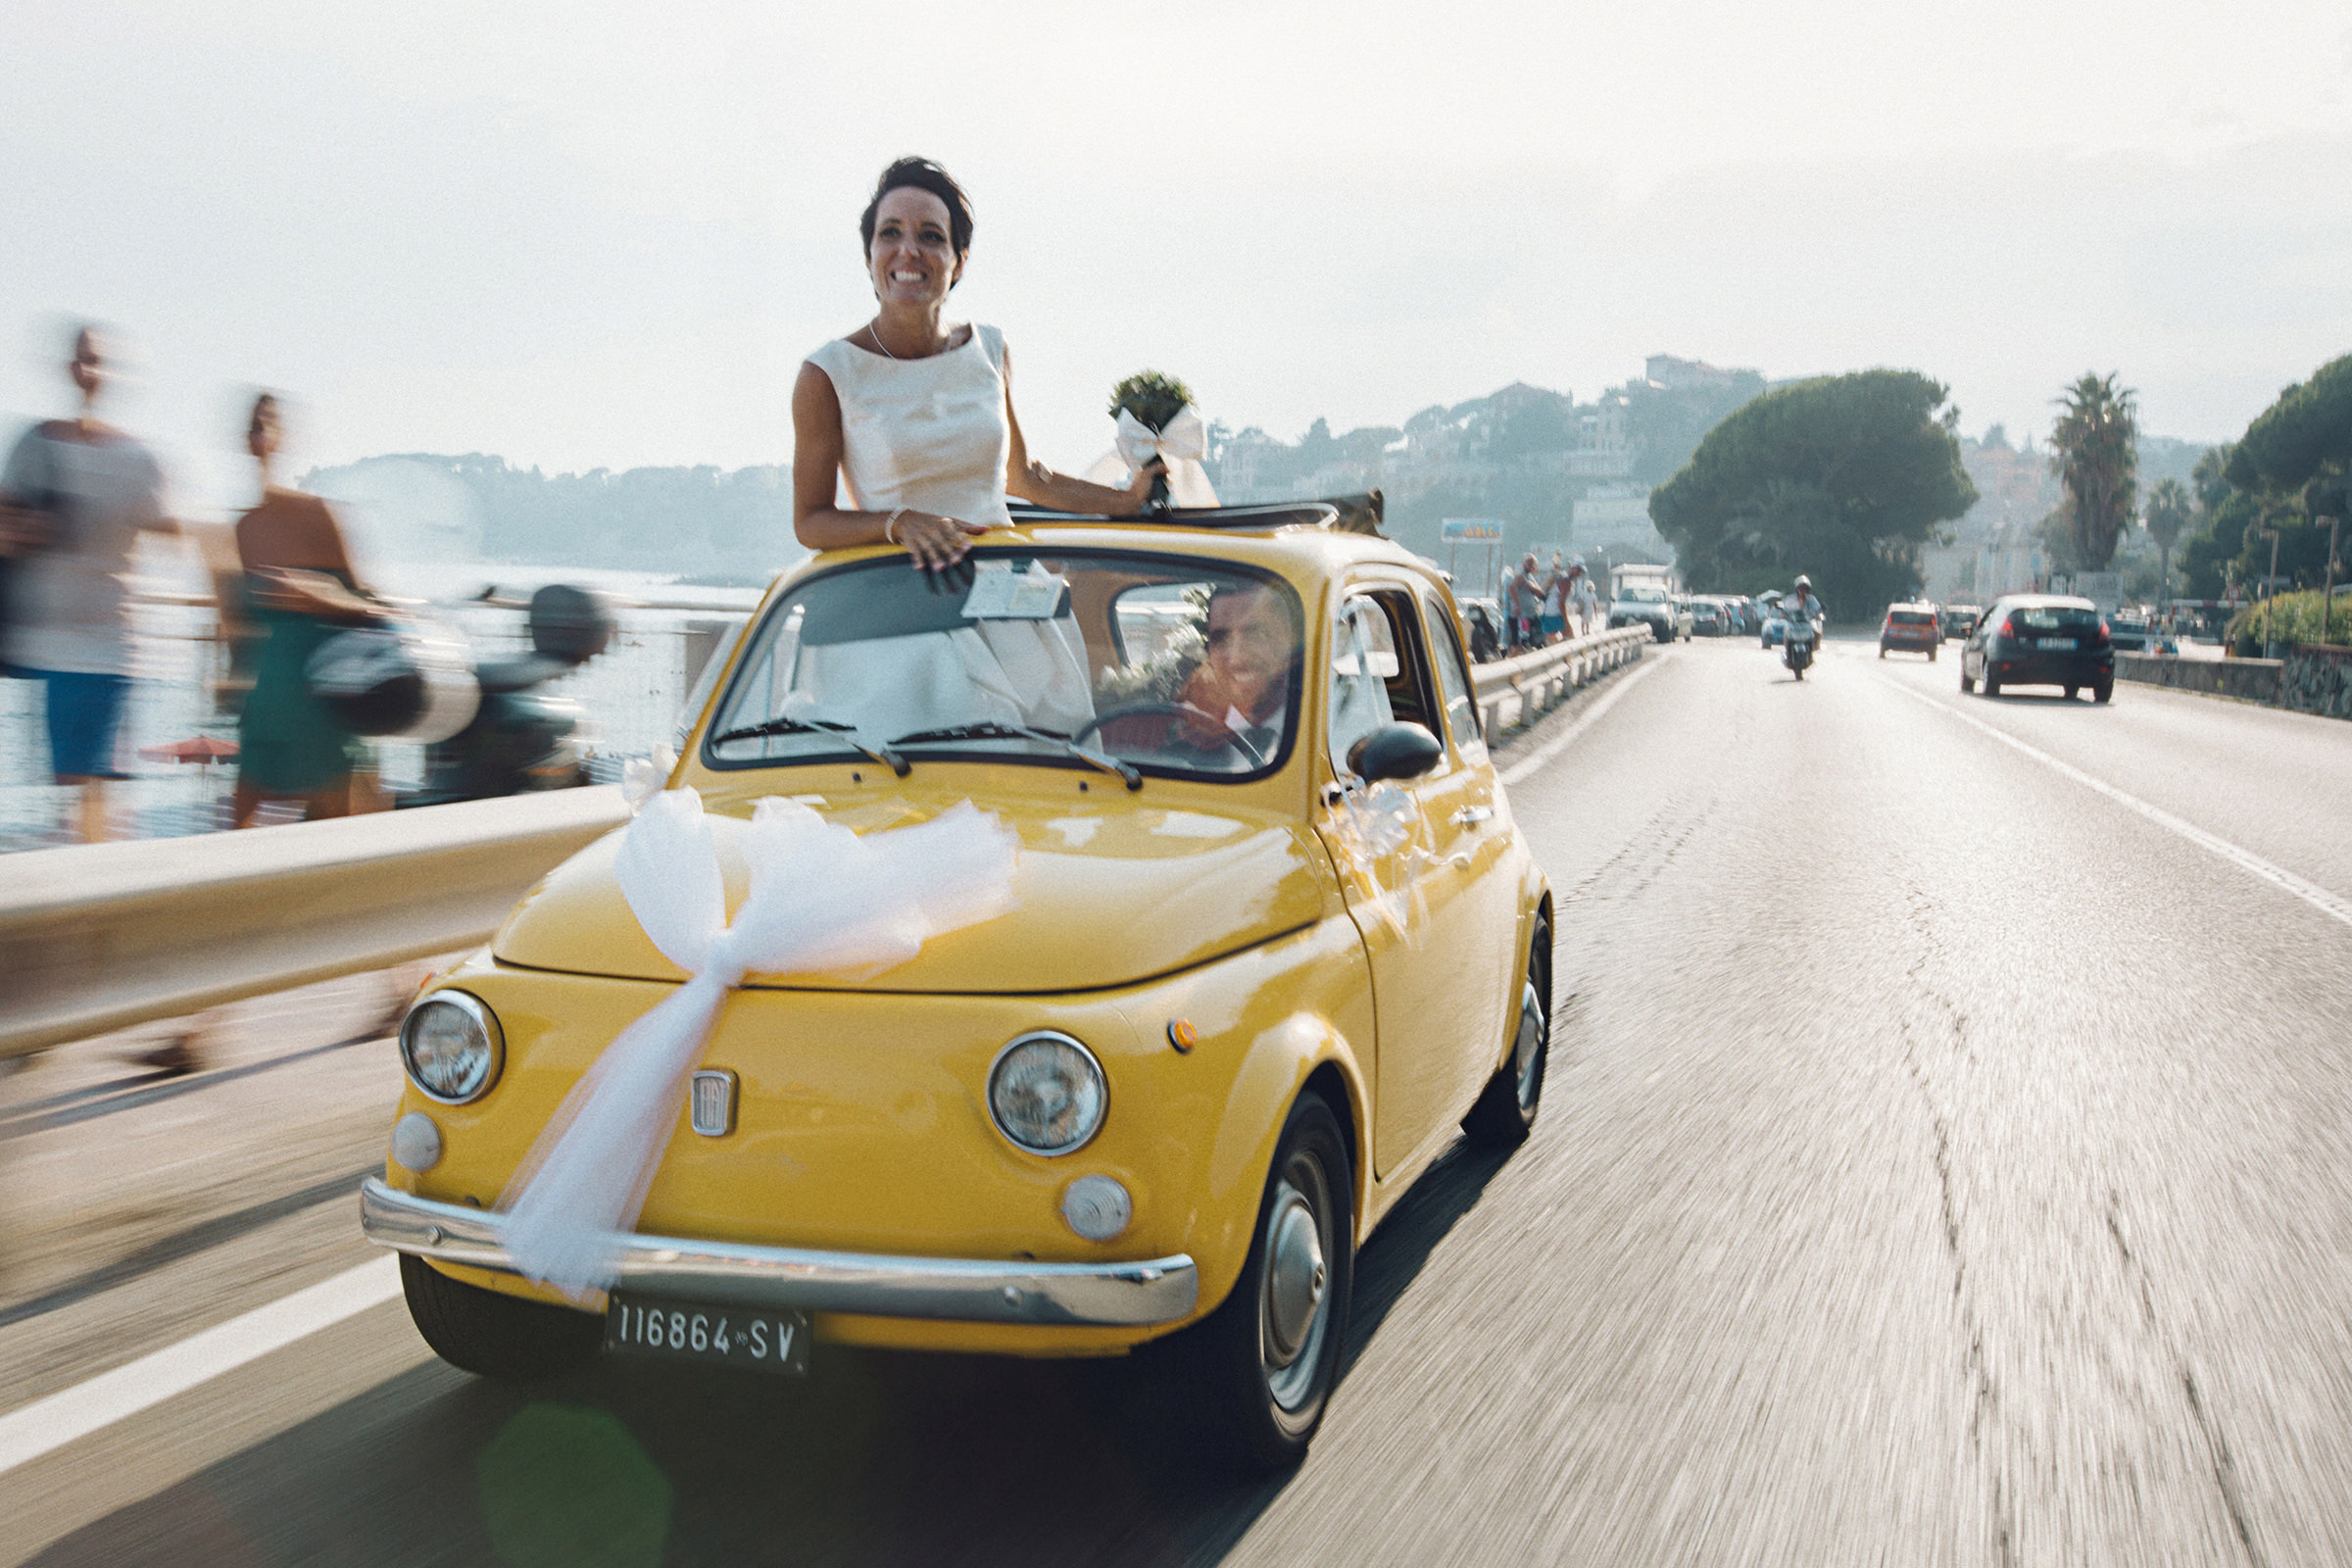 Bride standing in little yellow car as couple drives over scenic bridge  - photo by Andrea Bagnasco Fotografie